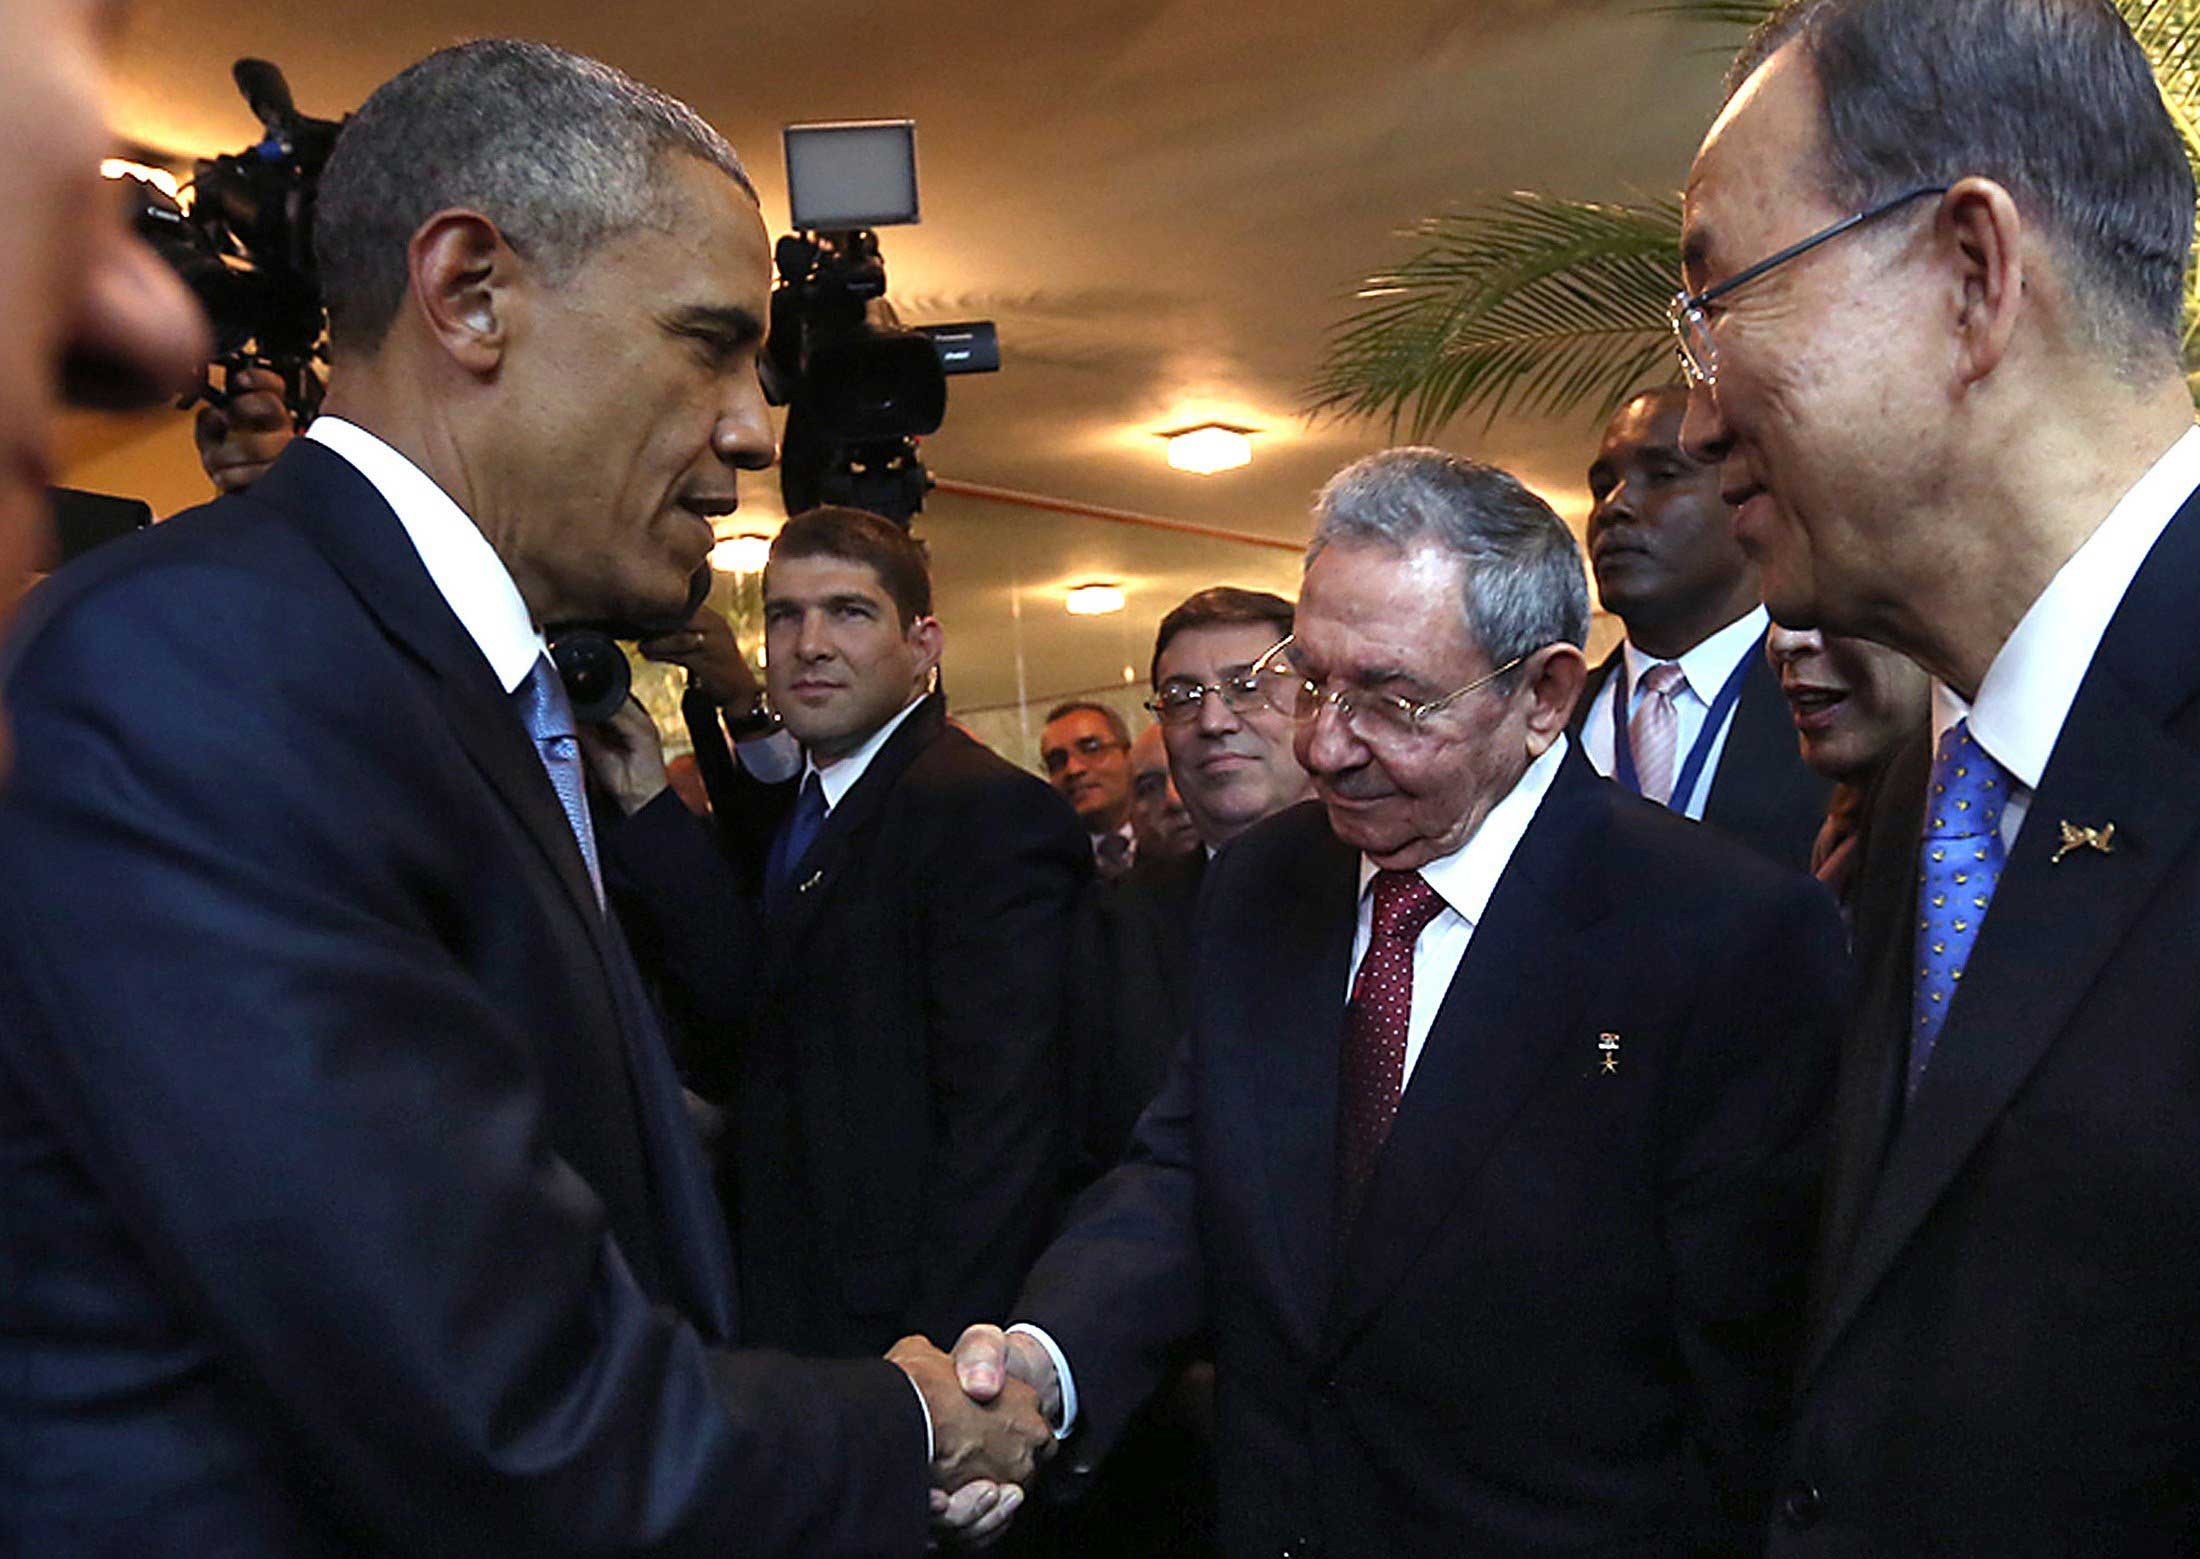 Cuban President Raul Castro (2-R) and US President Barack Obama (L) shaking hands as Castro's grandson and bodyguard Raul Rodriguez Castro (2-L), Cuban Foreign Minister Bruno Rodriguez (C) and United Nations chief Ban Ki-moon (R) look on, moments before the opening ceremony of the VII Americas Summit, in Panama City on April 10, 2015.